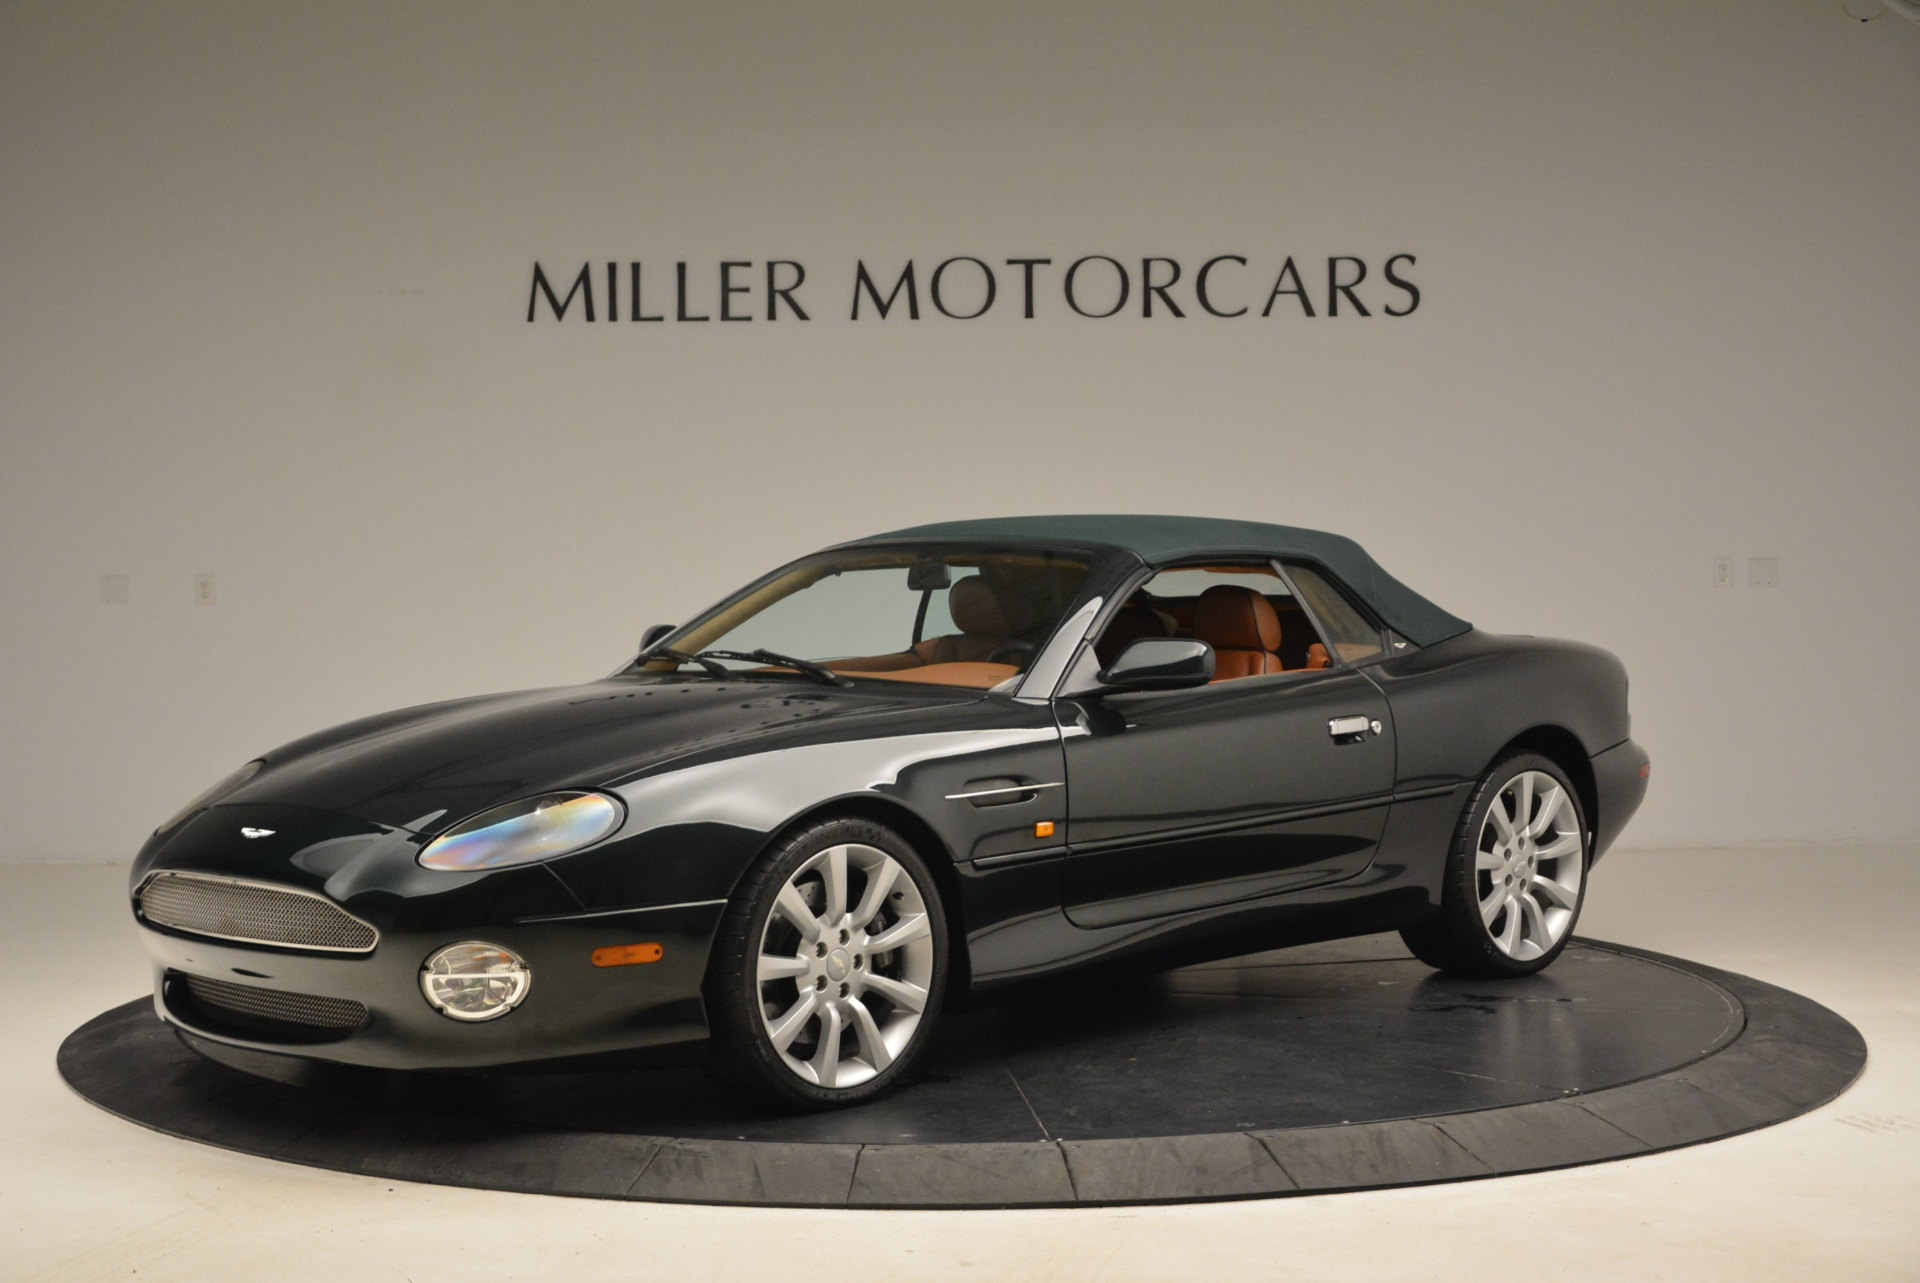 Used 2003 Aston Martin DB7 Vantage Volante For Sale In Westport, CT 2084_p14